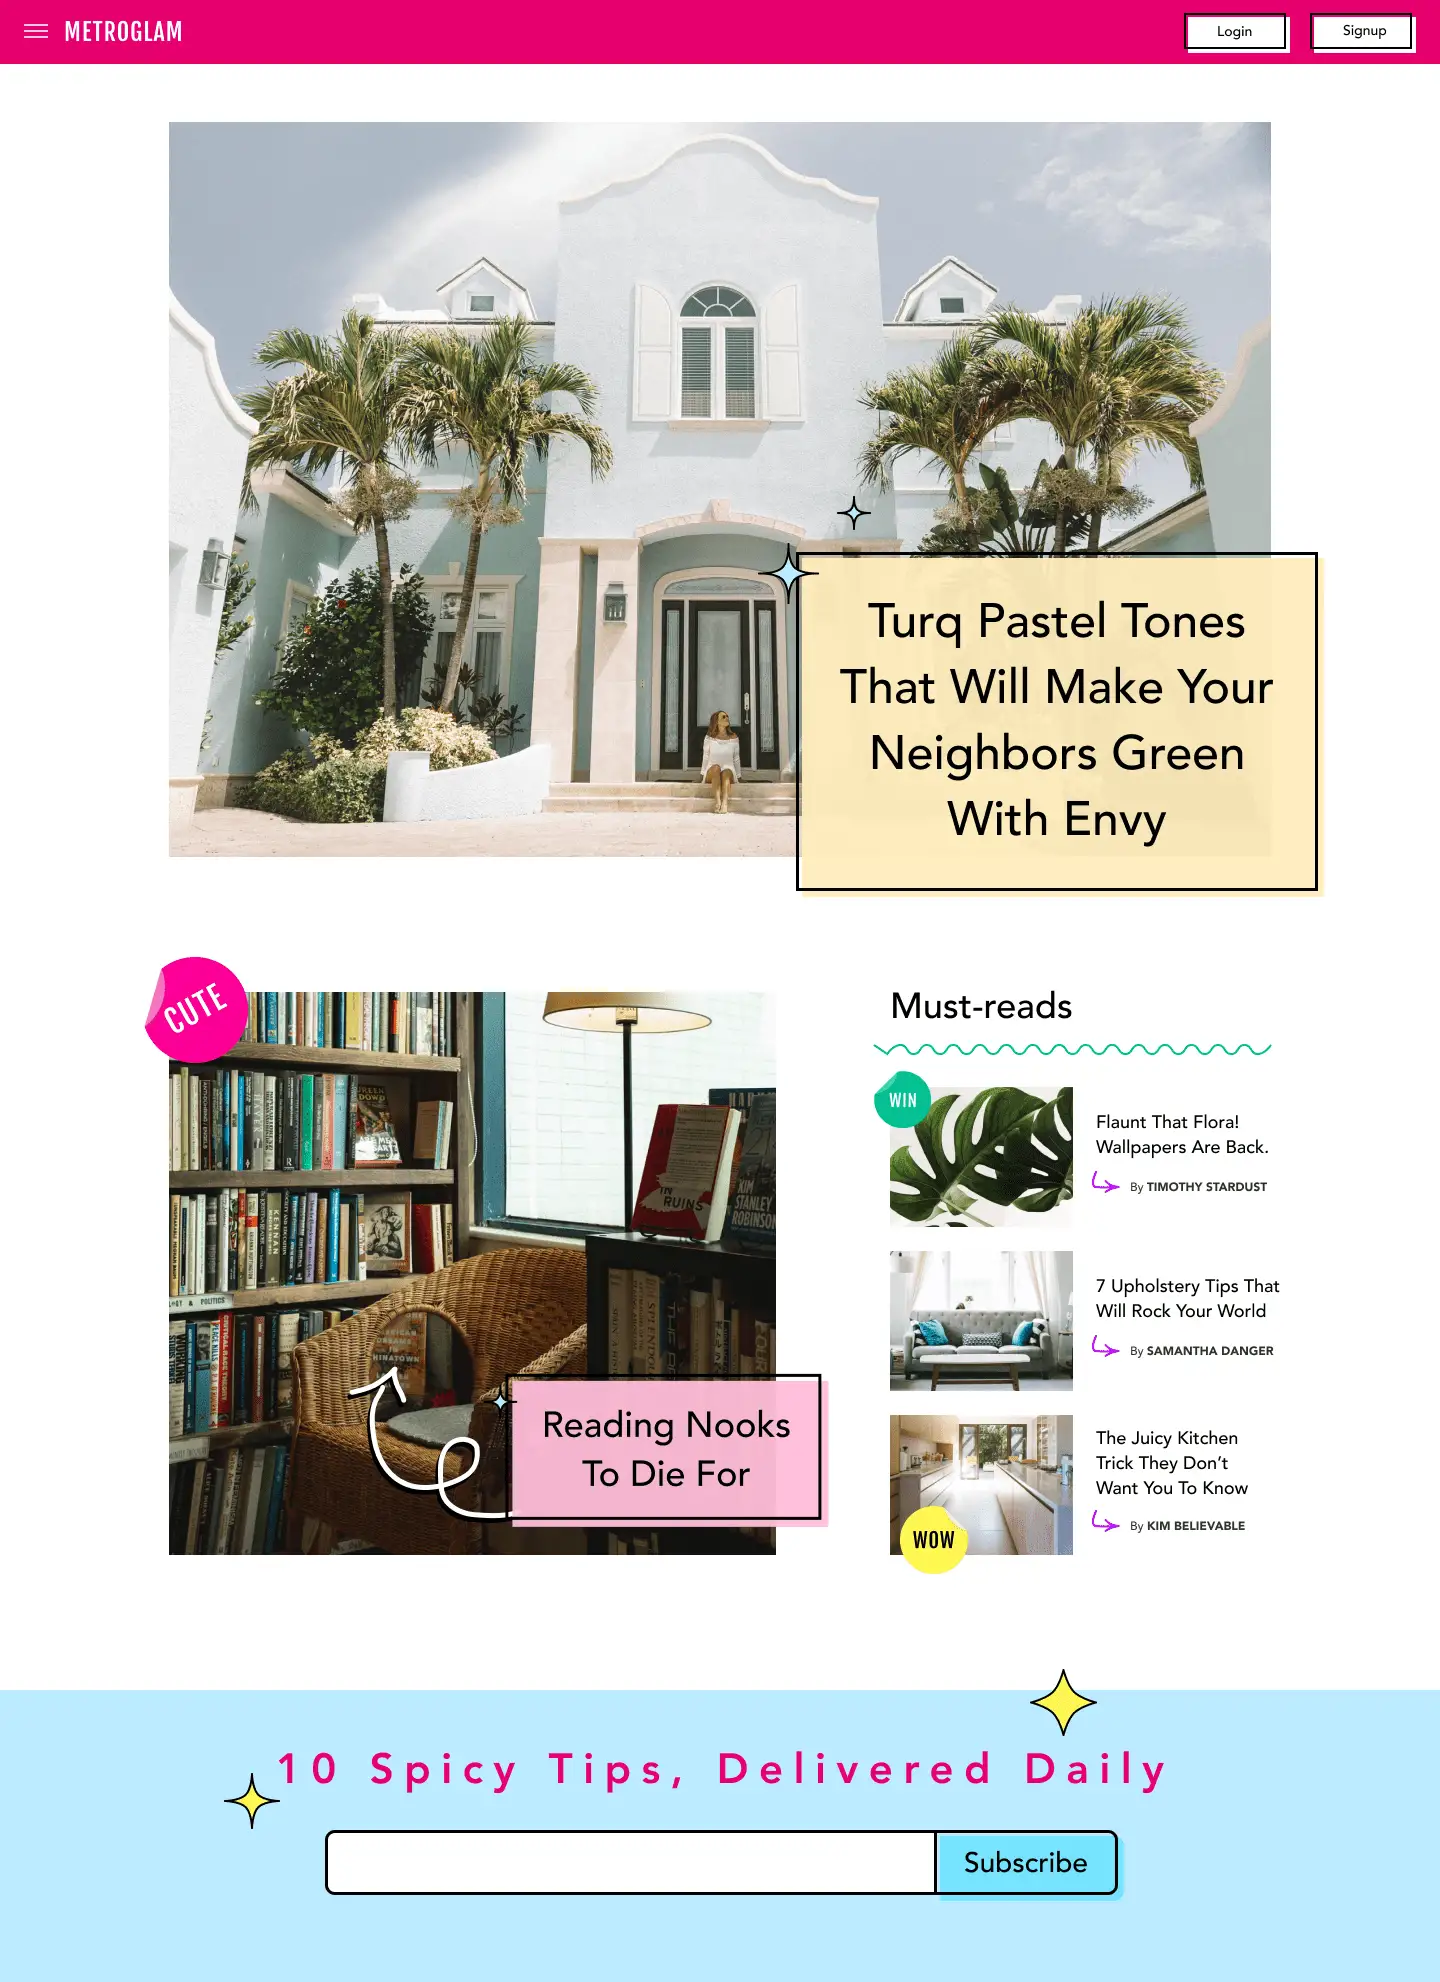 A mockup of a Cosmopolitan-style online magazine, except all the articles are about interior design and architecture